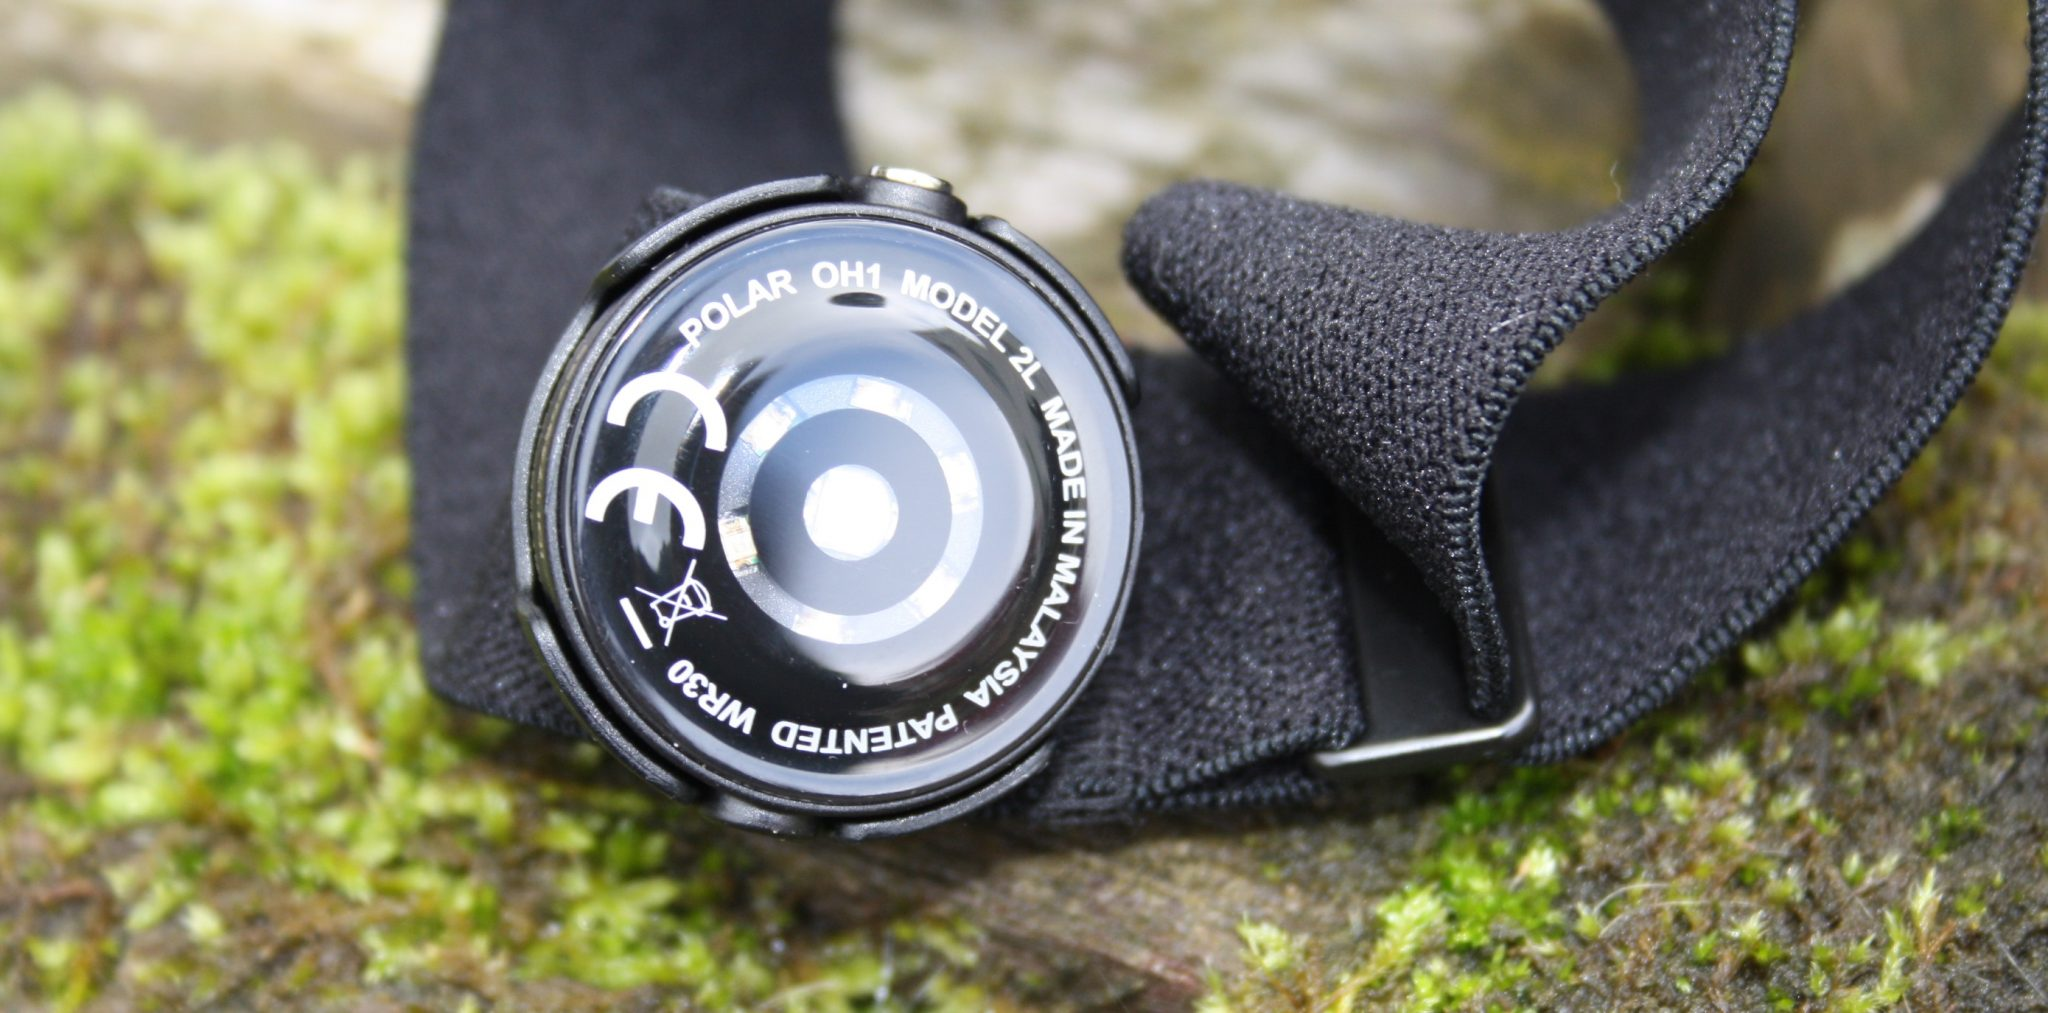 the5krunner — This Polar OH1 Review will look in detail at